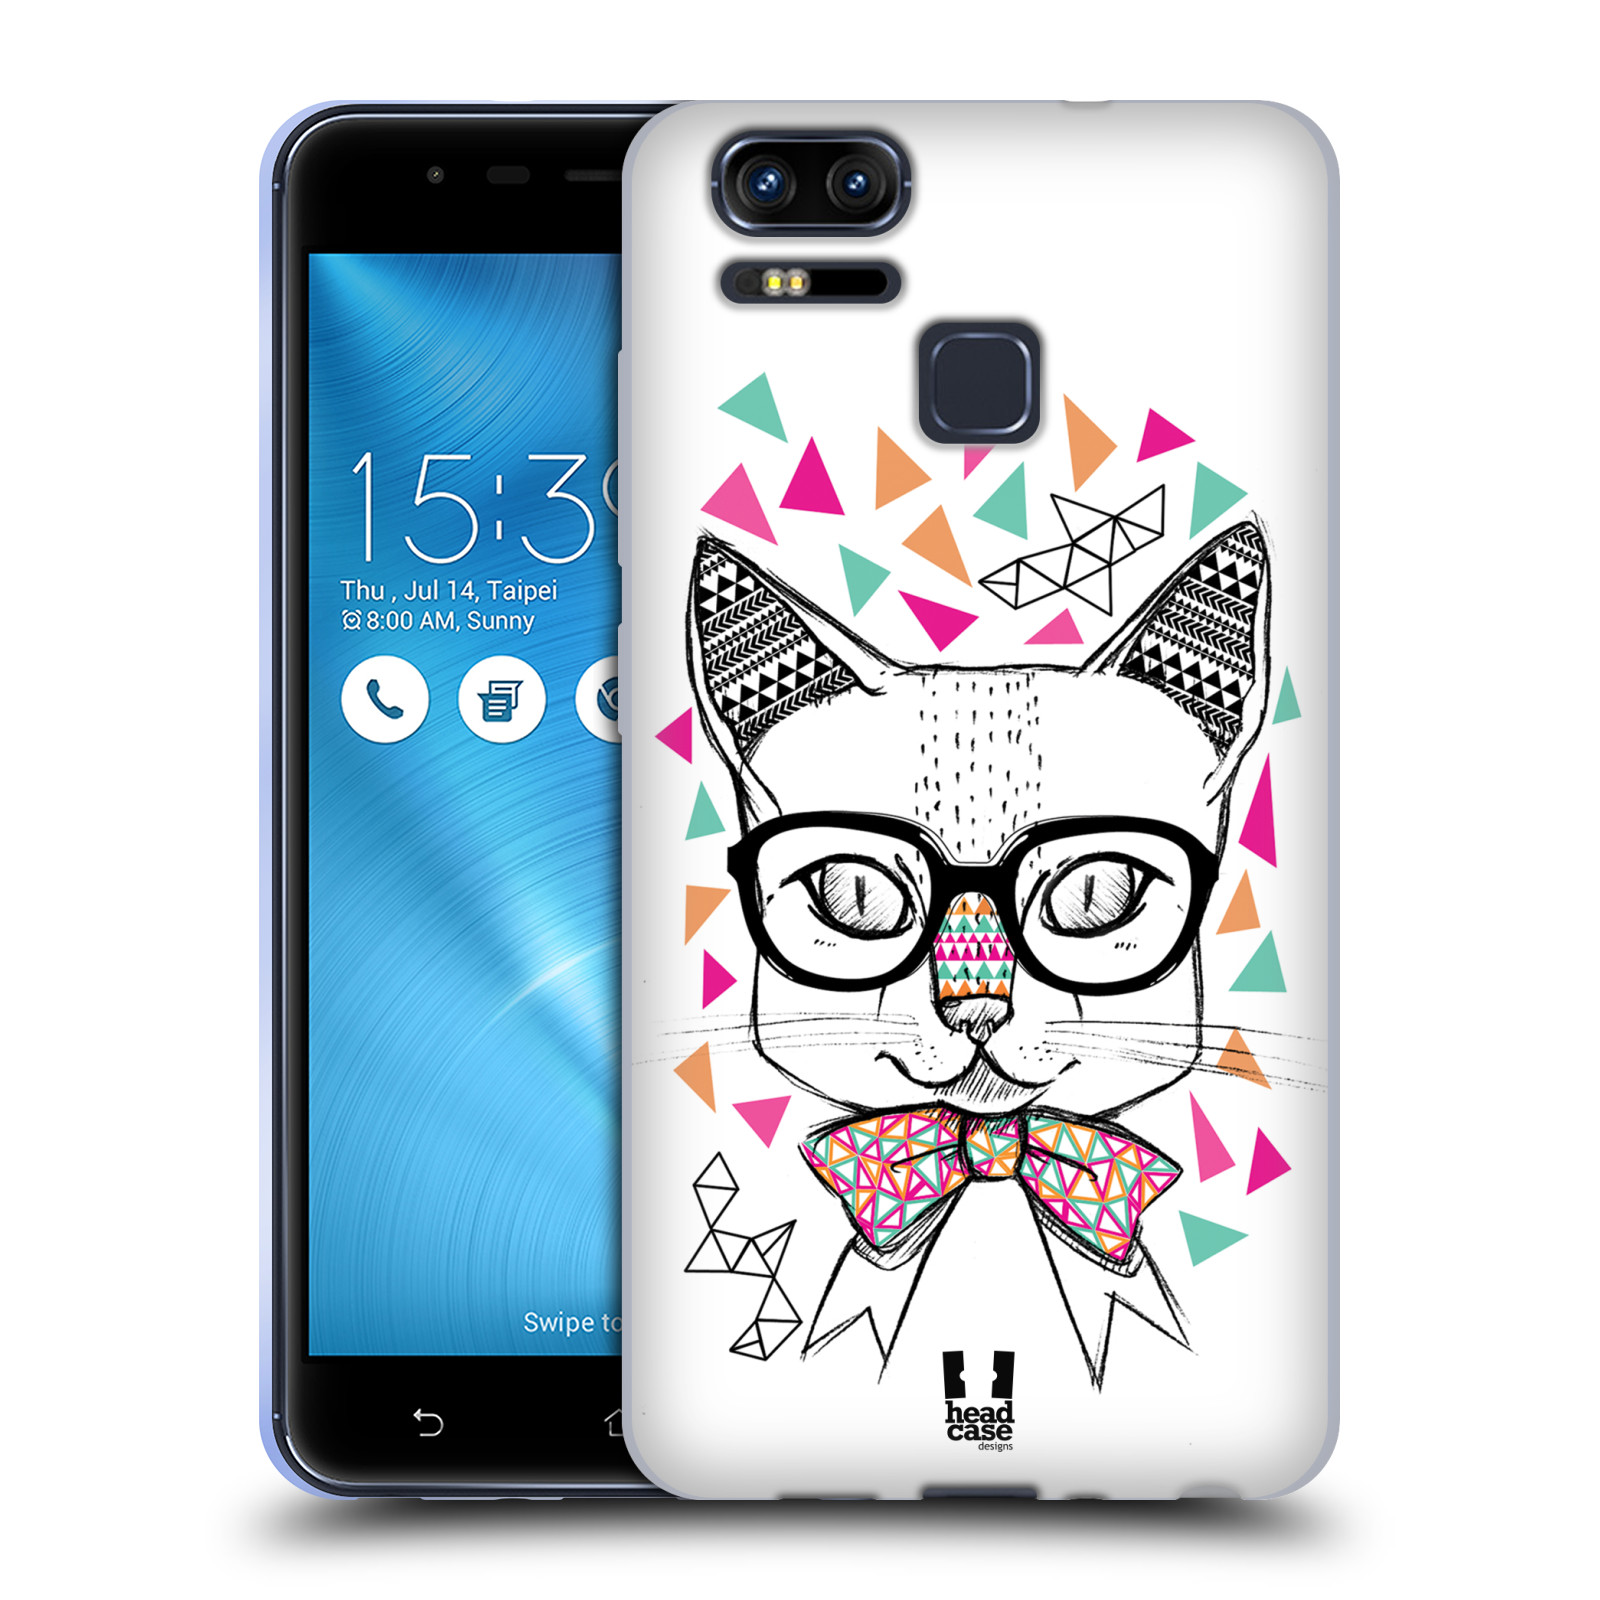 HEAD-CASE-DESIGNS-AZTEC-ILLUSTRATIONS-GEL-CASE-FOR-ASUS-ZENFONE-3-ZOOM-ZE553KL